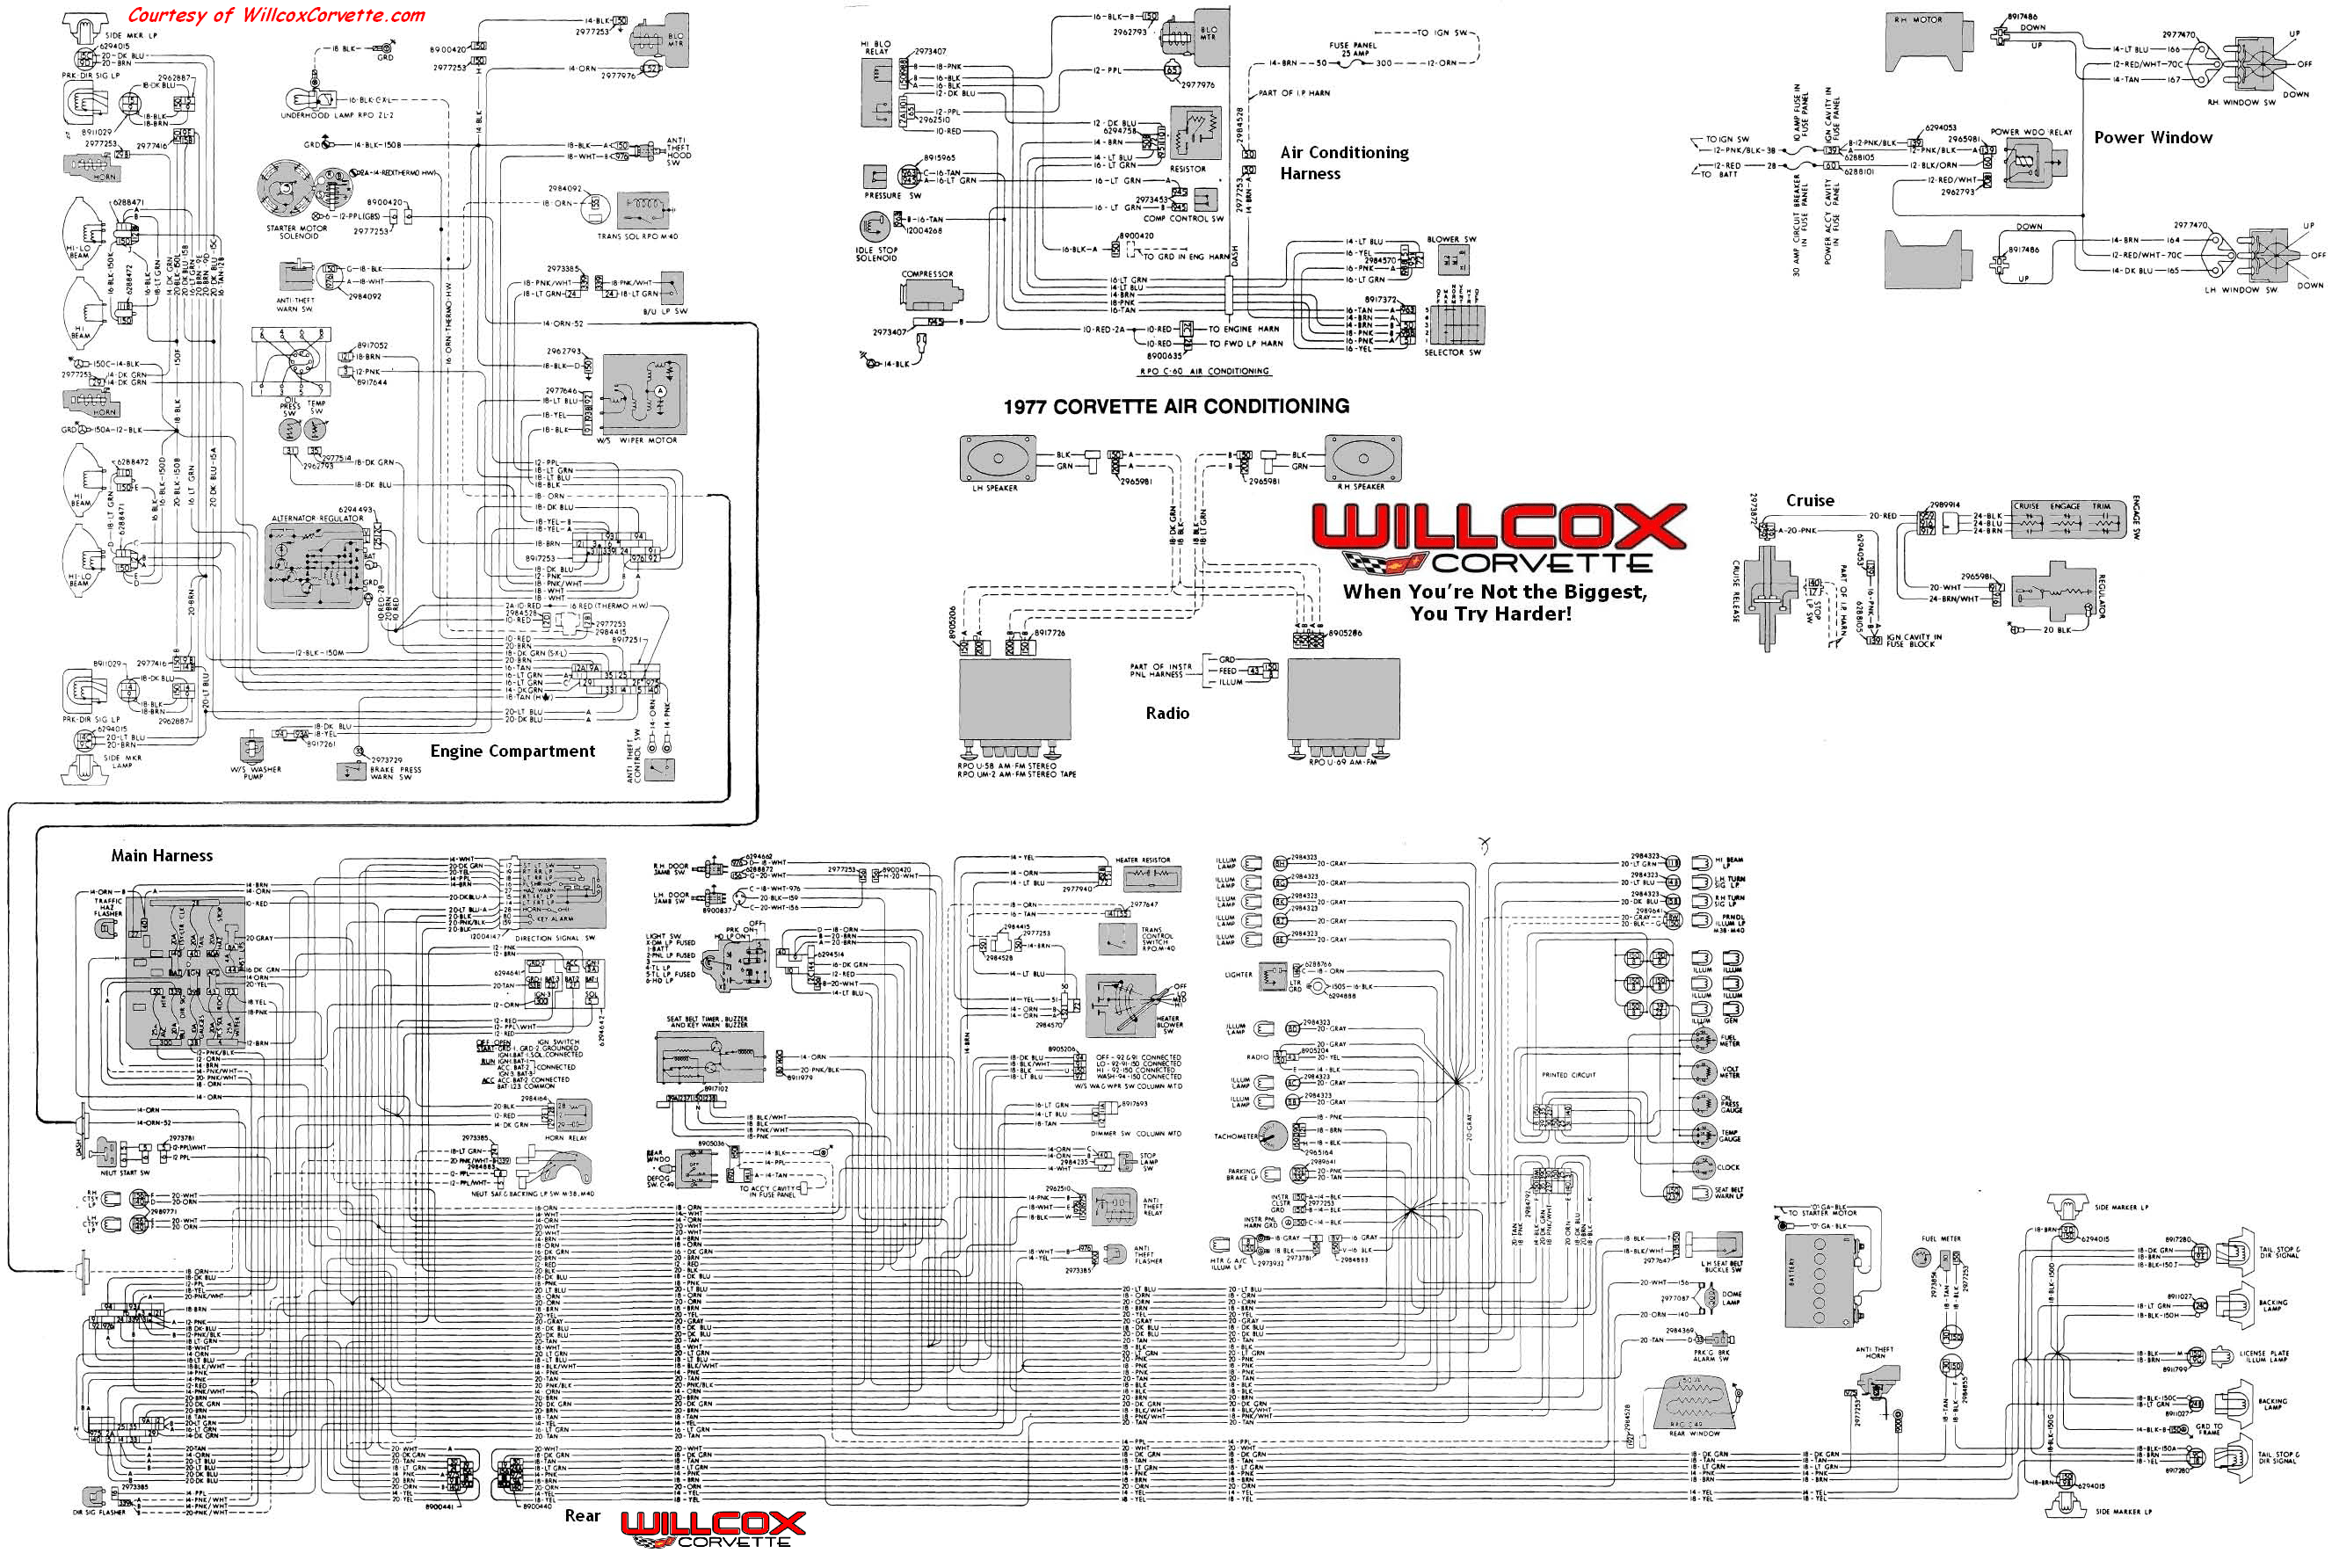 77 corvette wire schematic tracer?resize\\\\\\\\\\\\\=665%2C447 jeep cj wiring harness diagram wiring diagram simonand corvette wiring harness at edmiracle.co